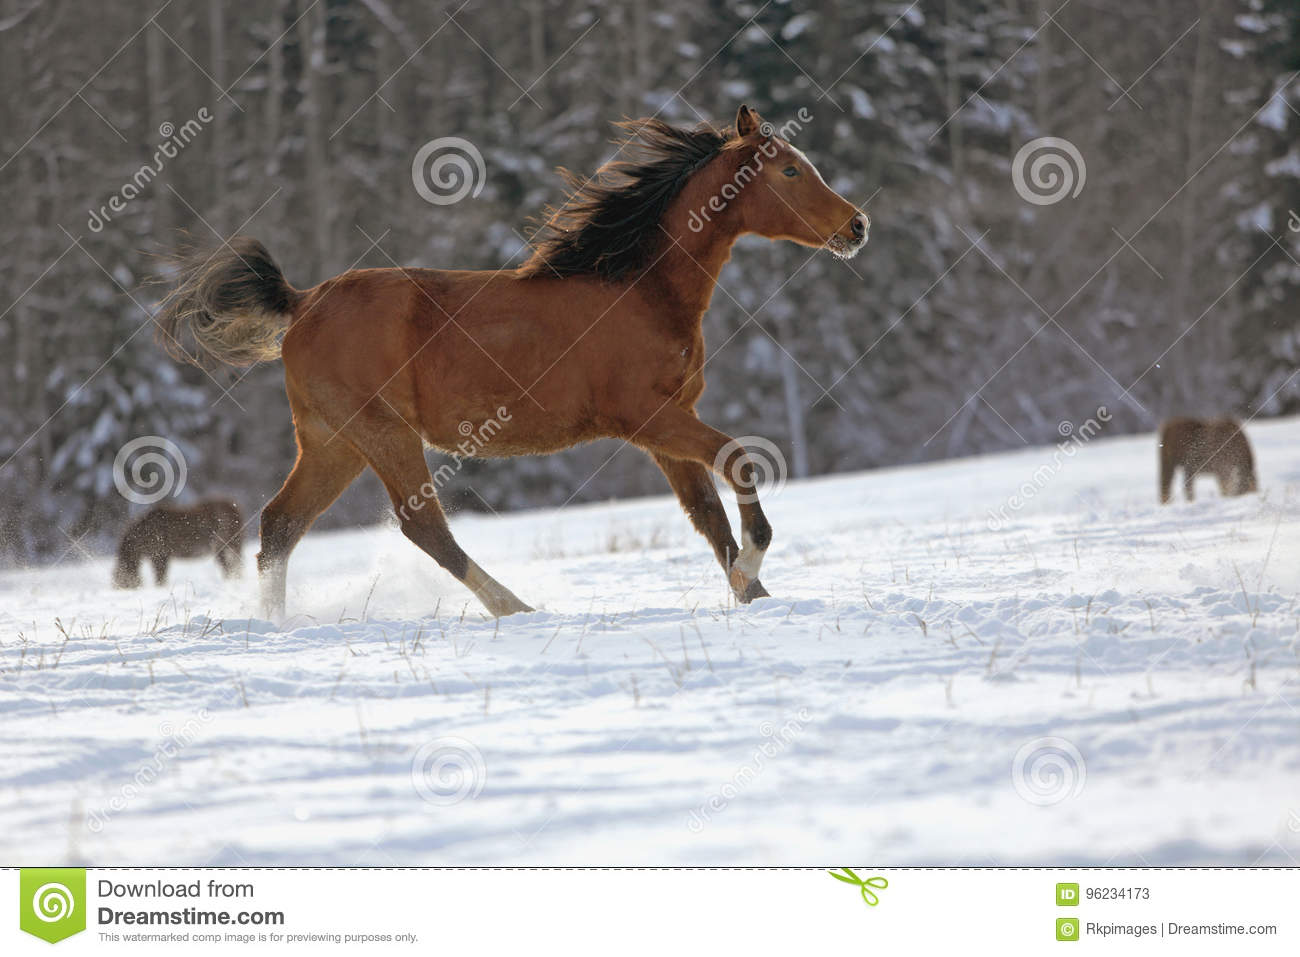 Bay Arabian Horse Galloping Stock Image Image Of Galloping Running 96234173